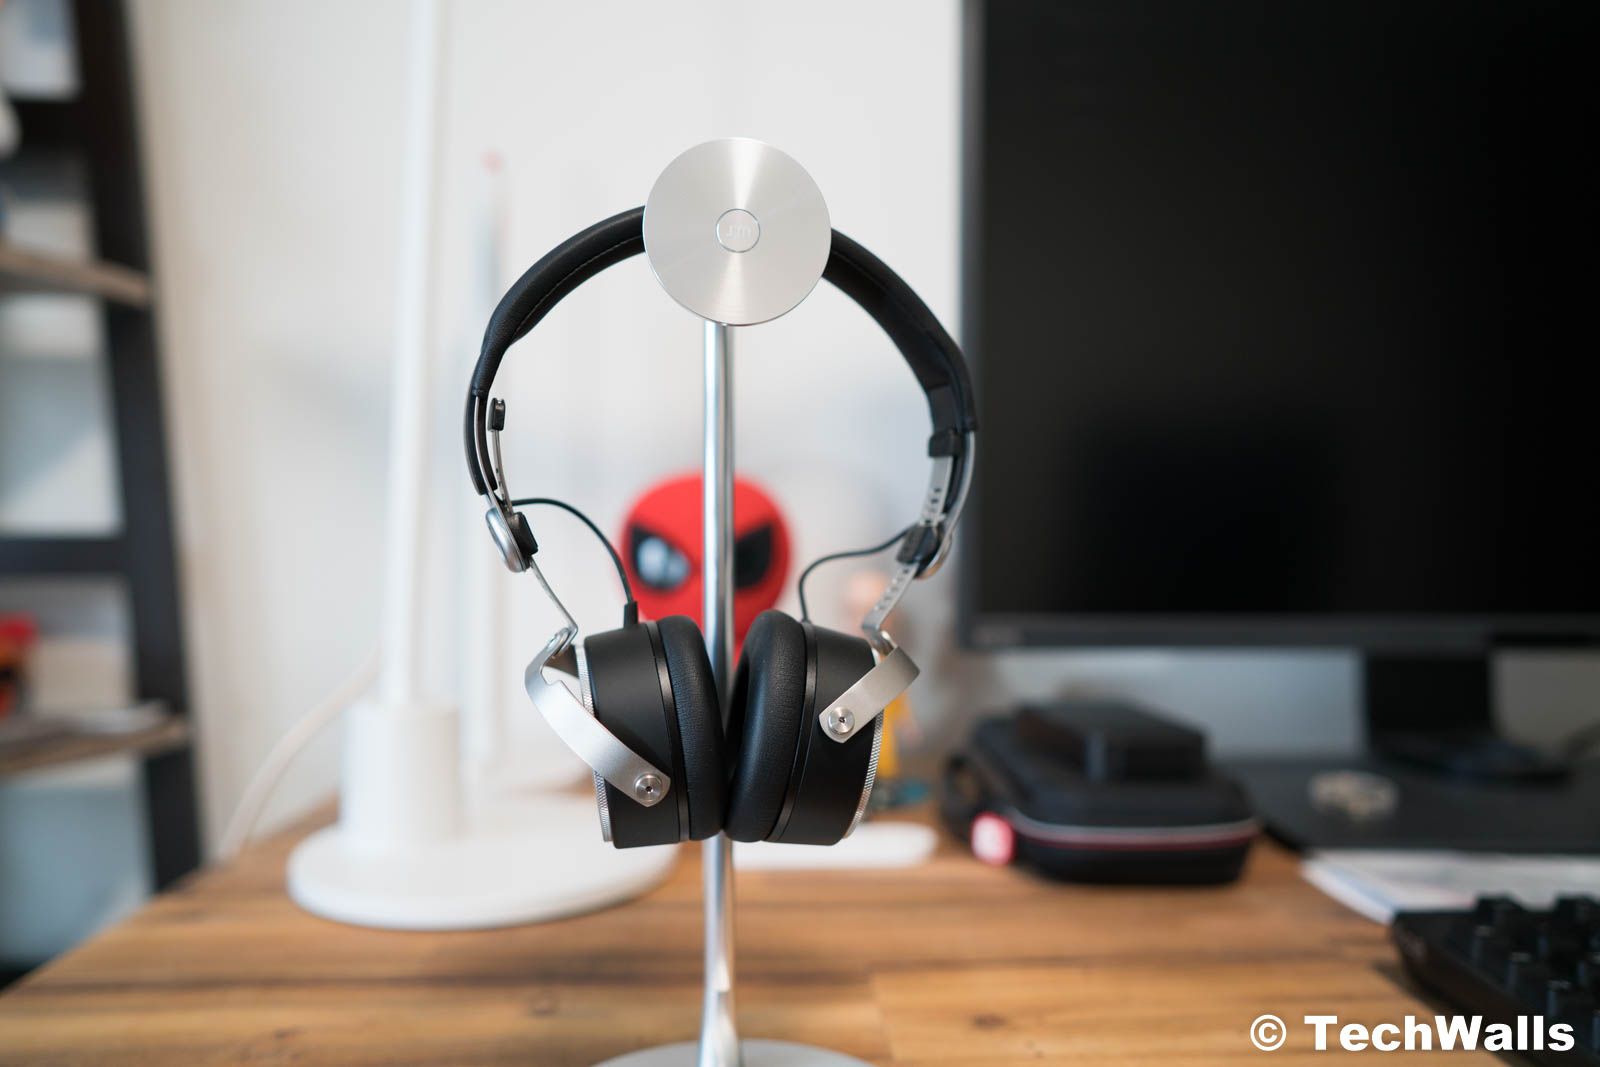 22114ed3d7e The design of the Aventho Wireless looks very familiar, probably because it  has some similar elements as the Beyerdynamic T51i. You can see the same  on-ear ...